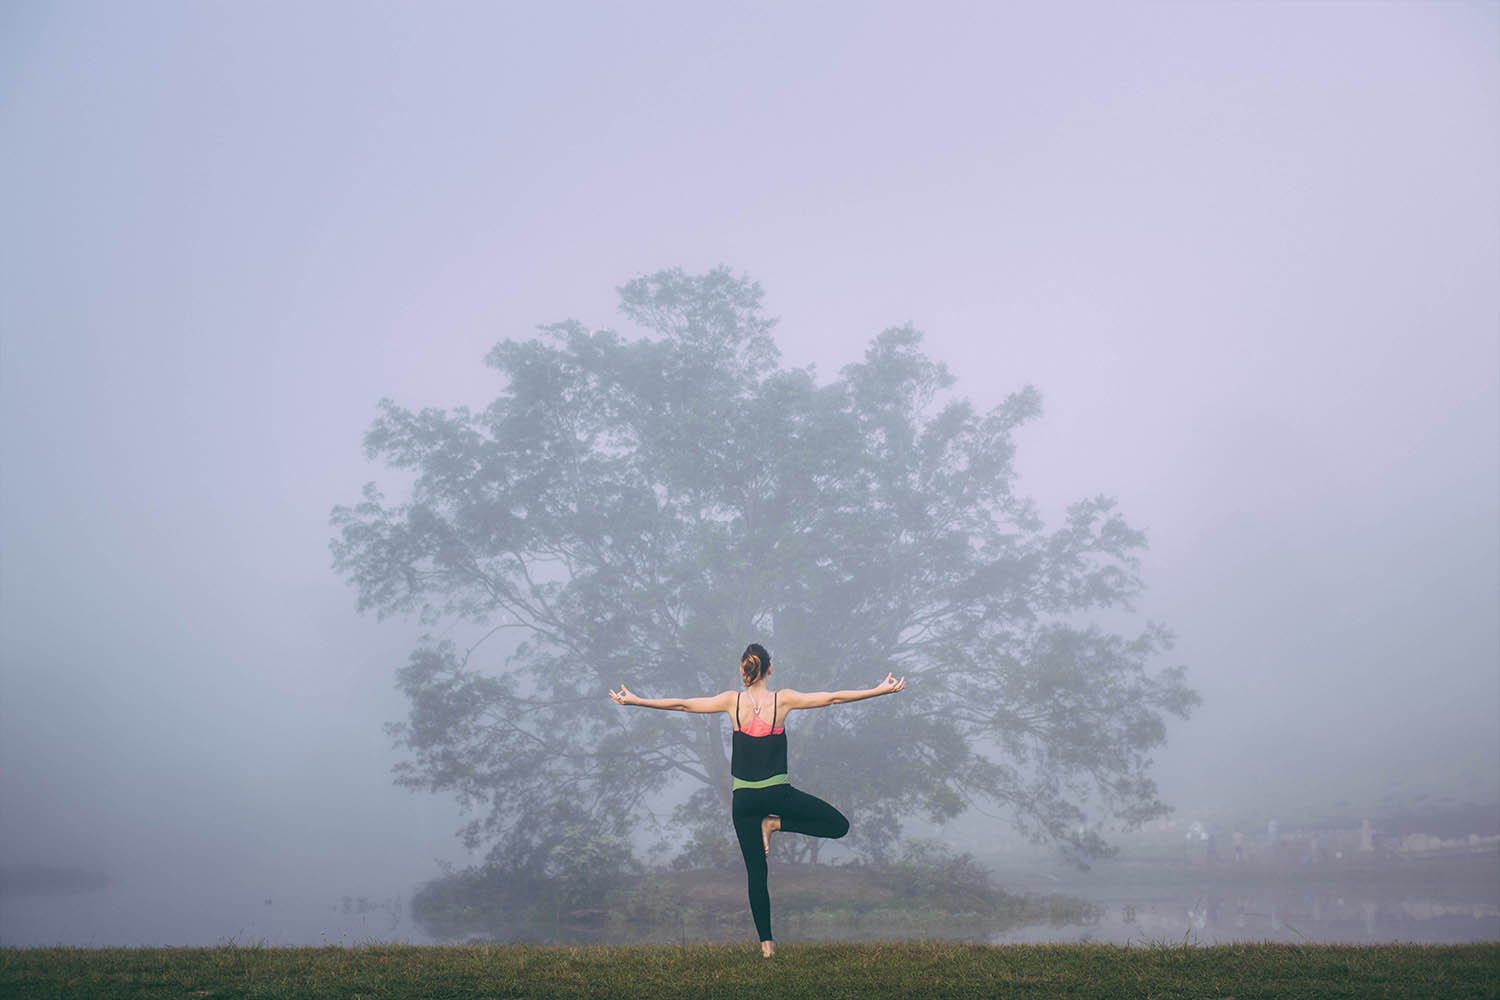 Find some mist and take some photographs of a friend doing Vrksasana (Tree pose) in front of a tree...